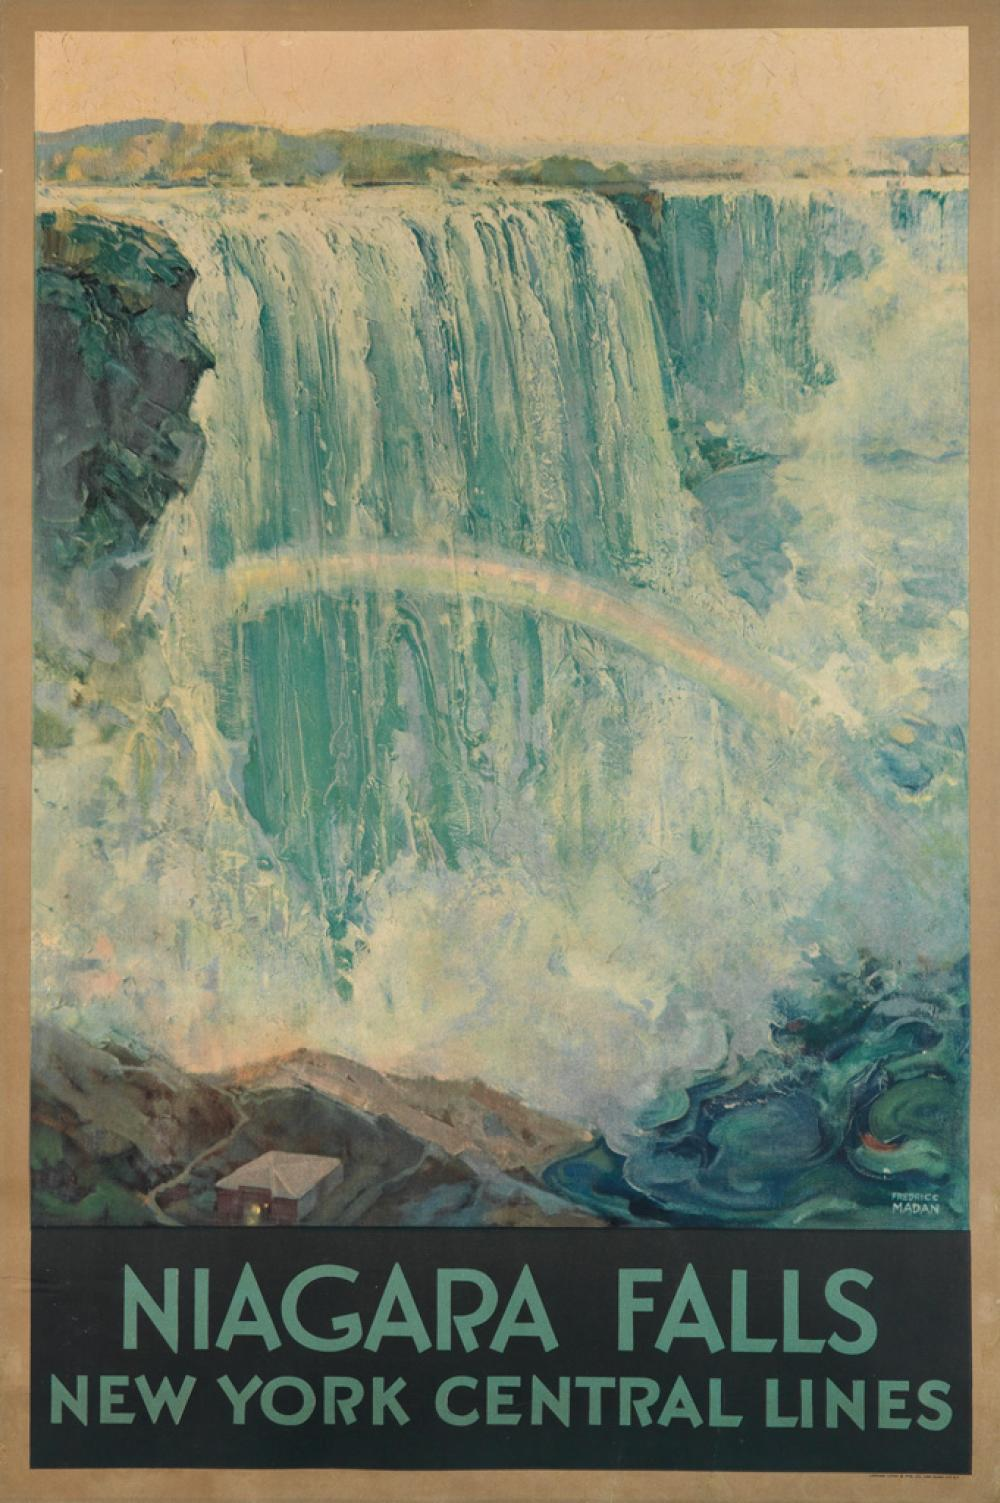 FREDERIC MADAN (1885-1972). NIAGARA FALLS / NEW YORK CENTRAL LINES. Circa 1928. 40x26 inches, 103x68 cm. Latham Litho & Ptg. Co., Long